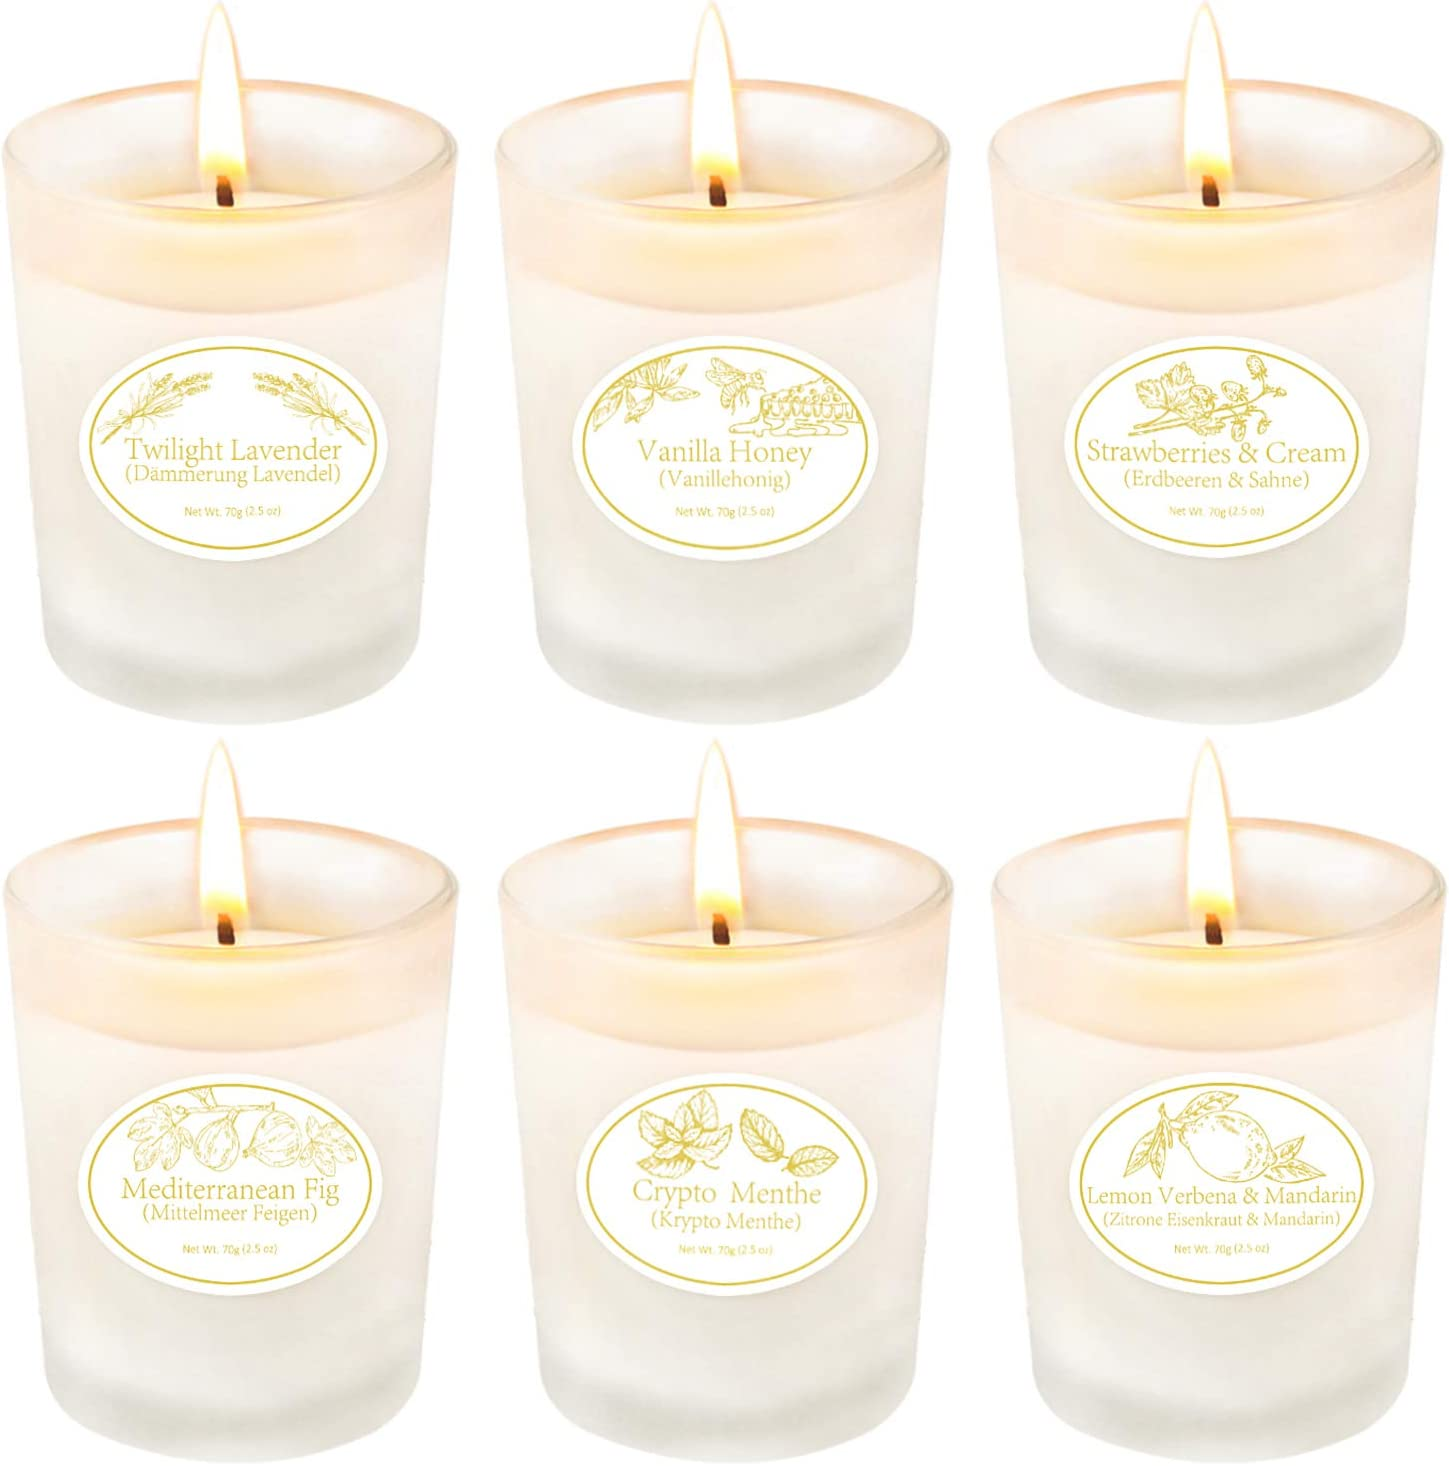 Scented Candles Gifts for Women,Aromatherapy Candles for Home Scented,Soy Wax for Stress Relief Birthday Christmas, Party, Yoga, Bathing